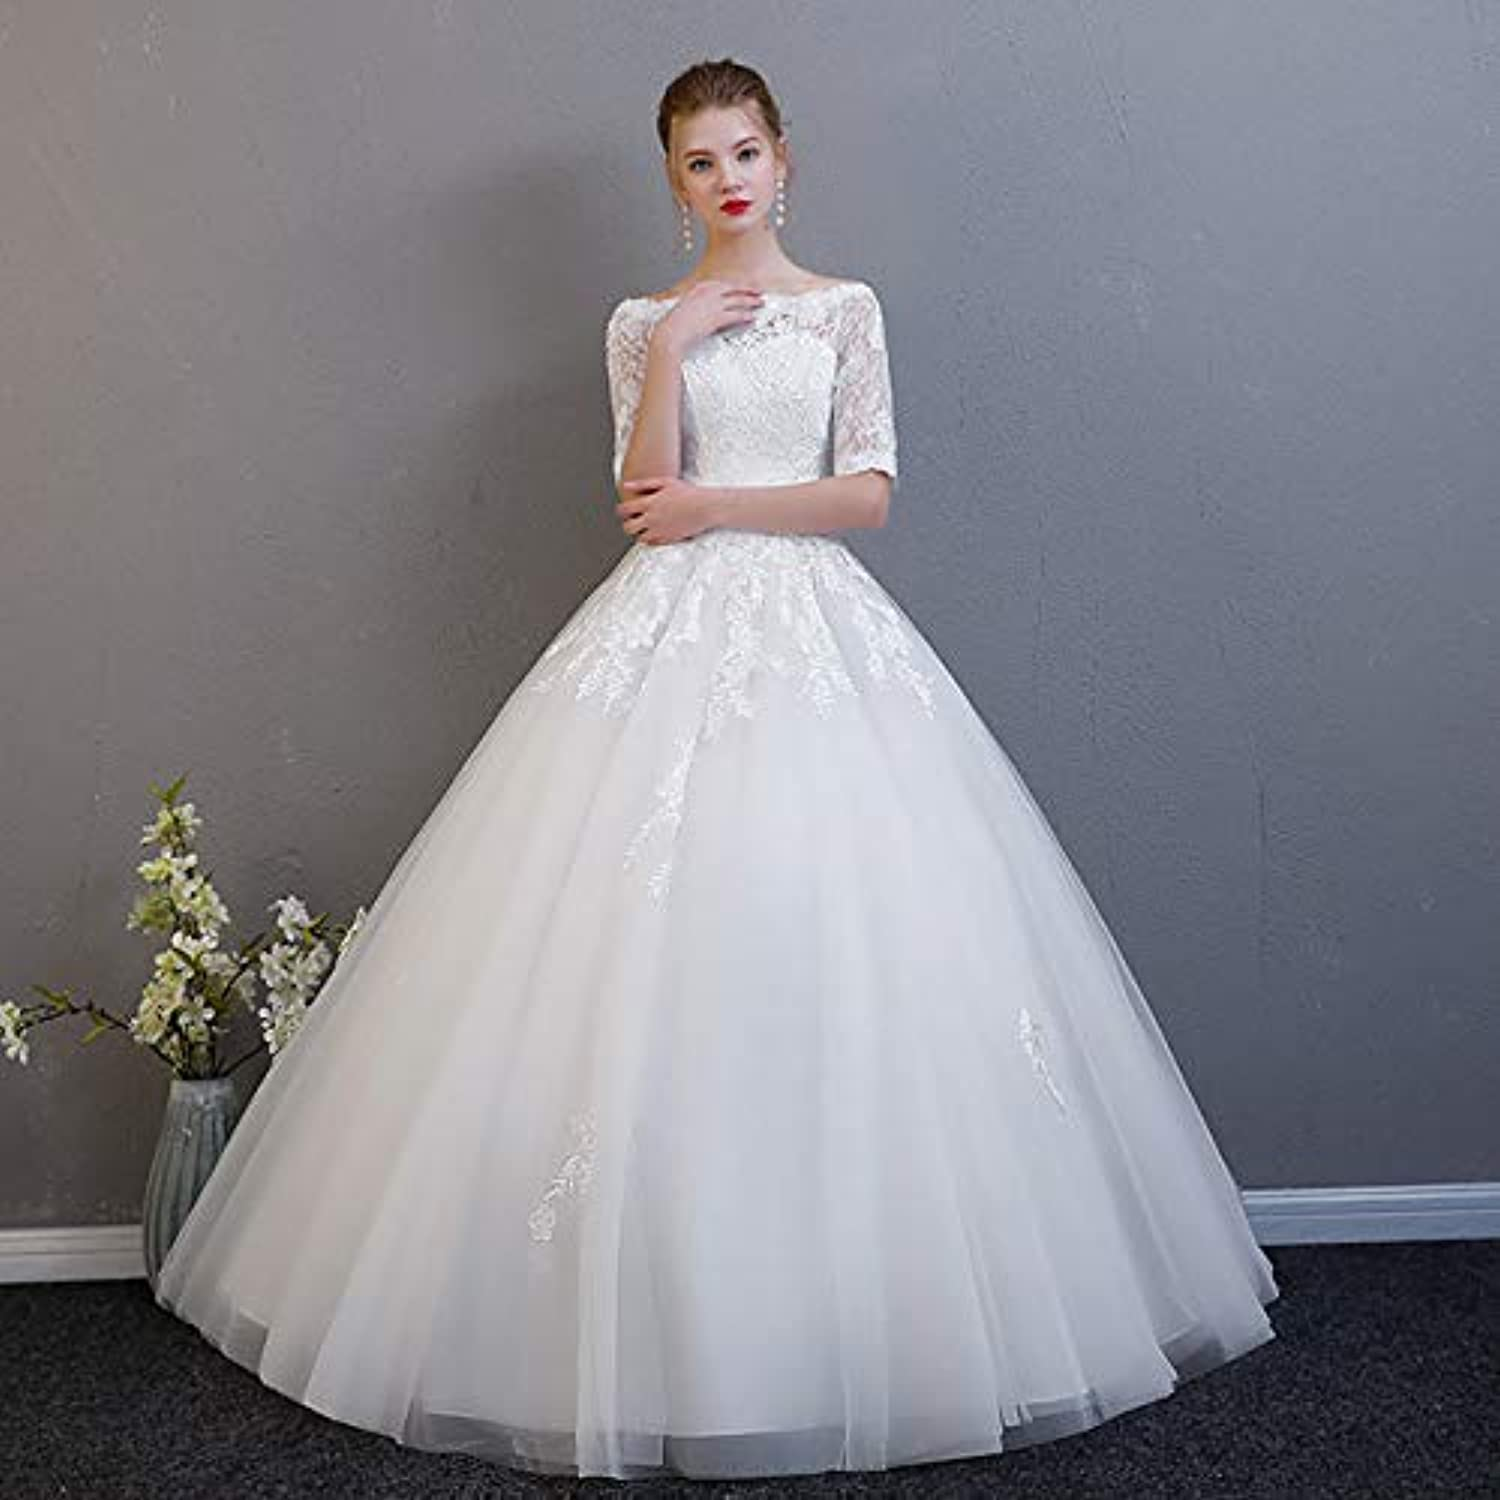 Fashion Slim Aline Wedding Dresses for Bride Simple Elegant Medium Sleeve Floor Length Dresses with Lace Appliques Suit for Ceremony Party